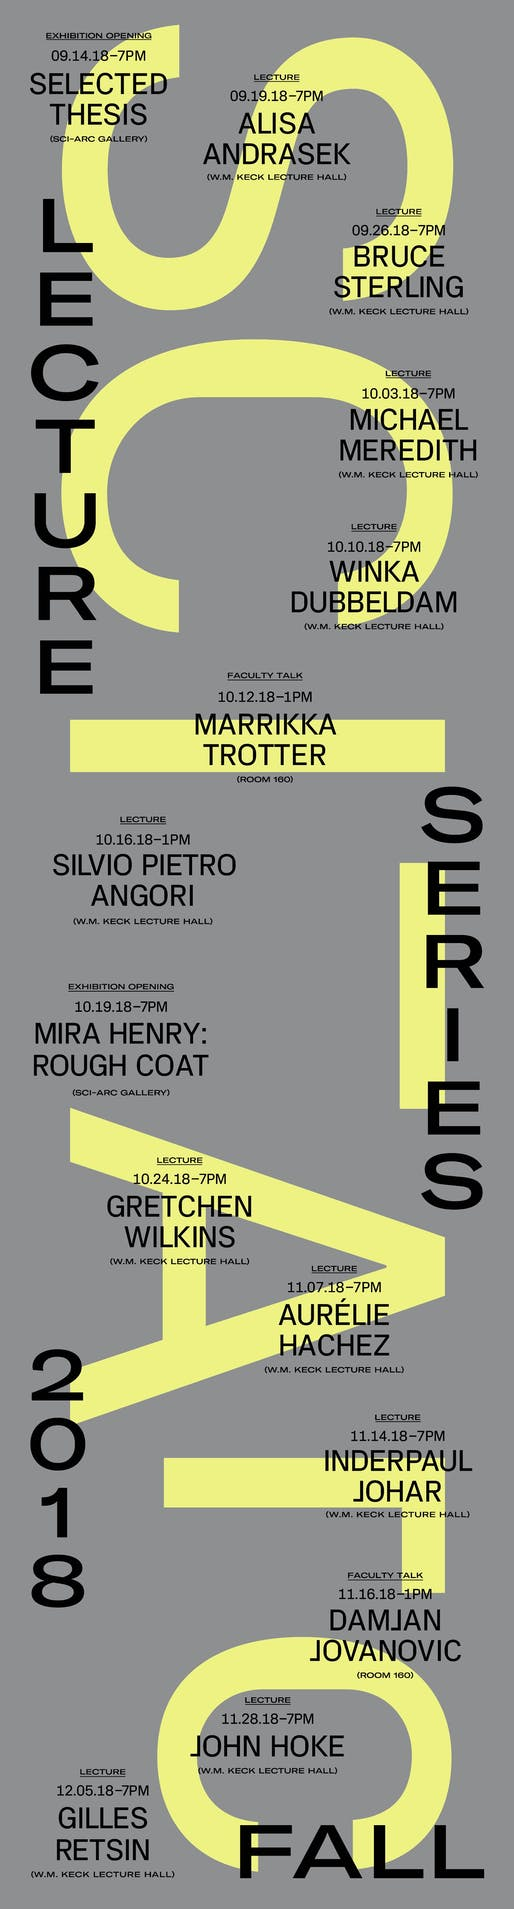 Poster courtesy of SCI-Arc.